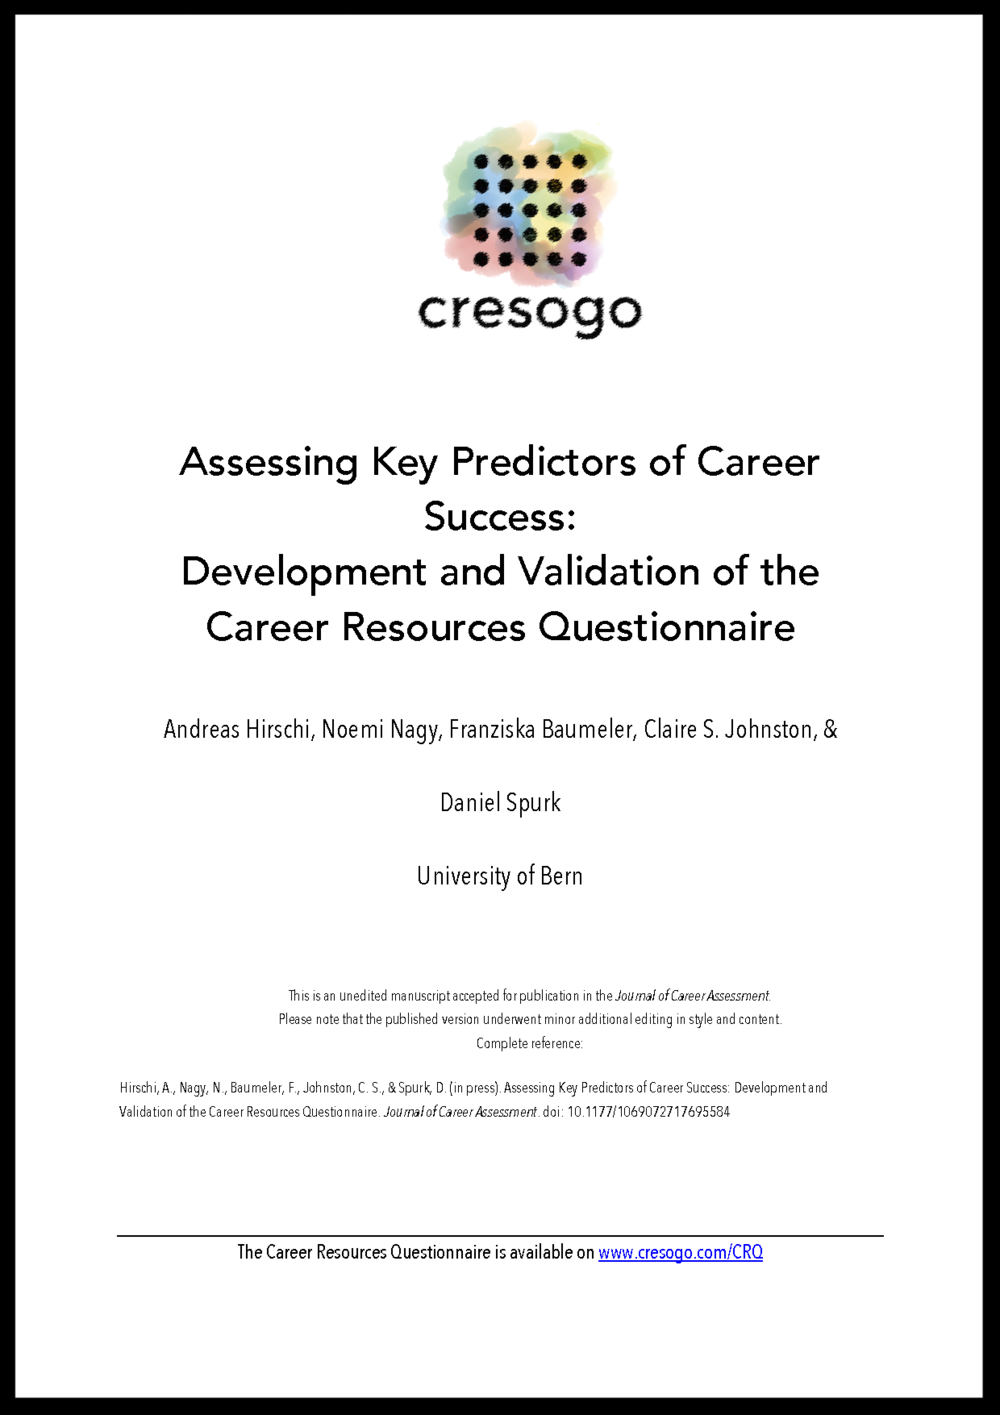 Development and Validation of the Career Resources Questionnaire_cover.png